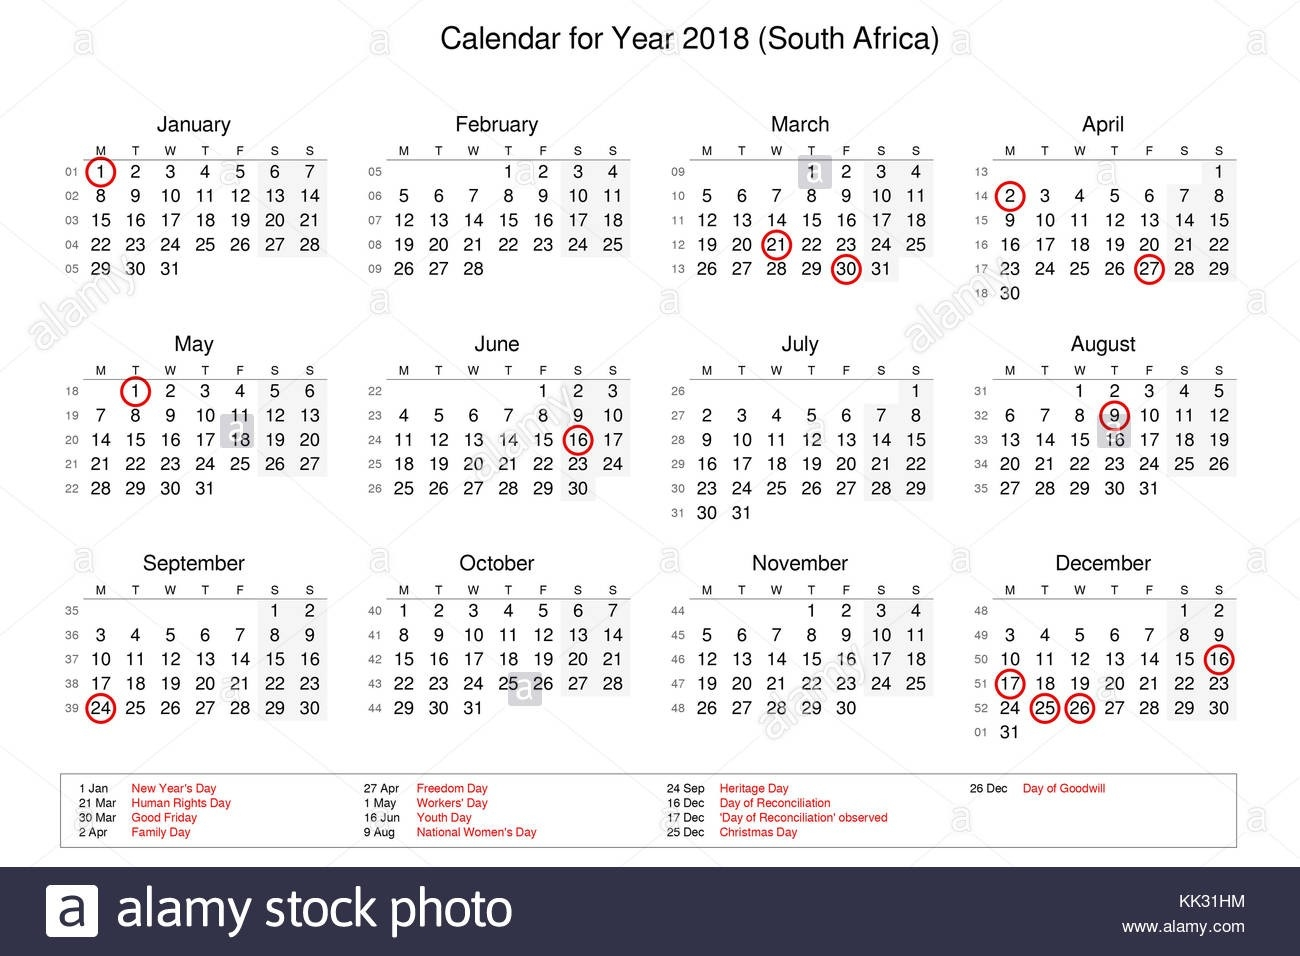 Calendar Of Year 2018 With Public Holidays And Bank Holidays-Public Holidays South Africa